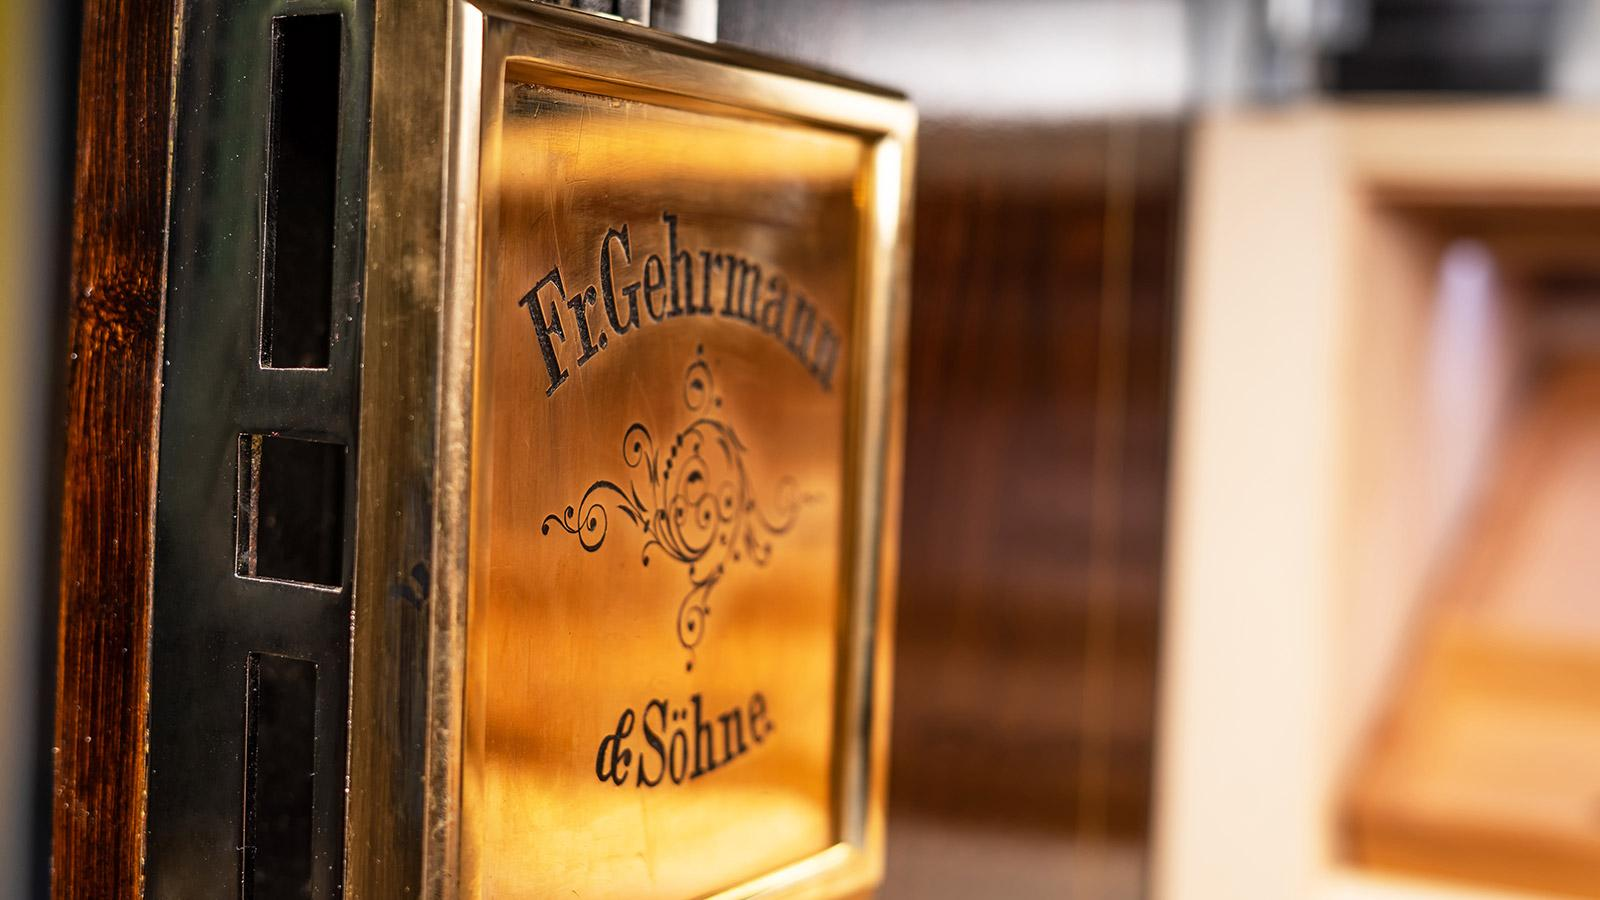 The insignia on one of the locks reads Fr. Gehrmann and Söhne, presumably the company that built the original safe.